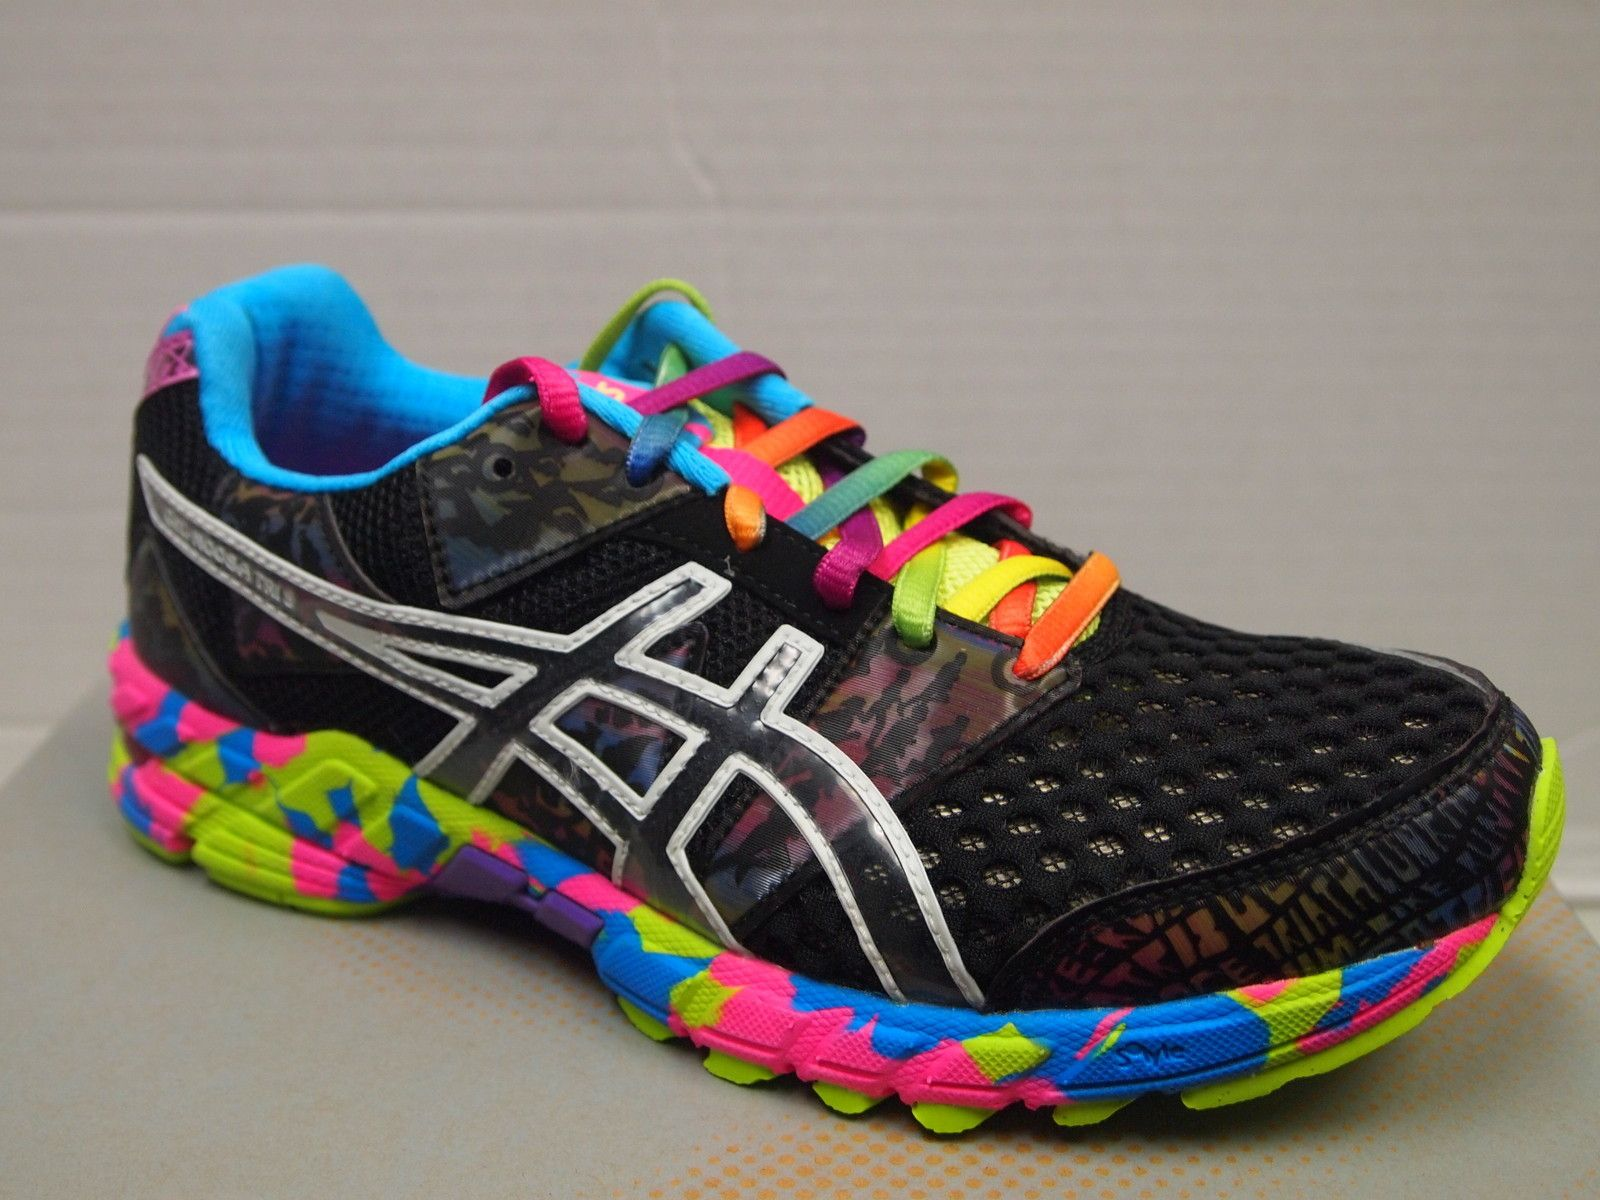 Asics In Black New Shoes Run Schoenen Rennen